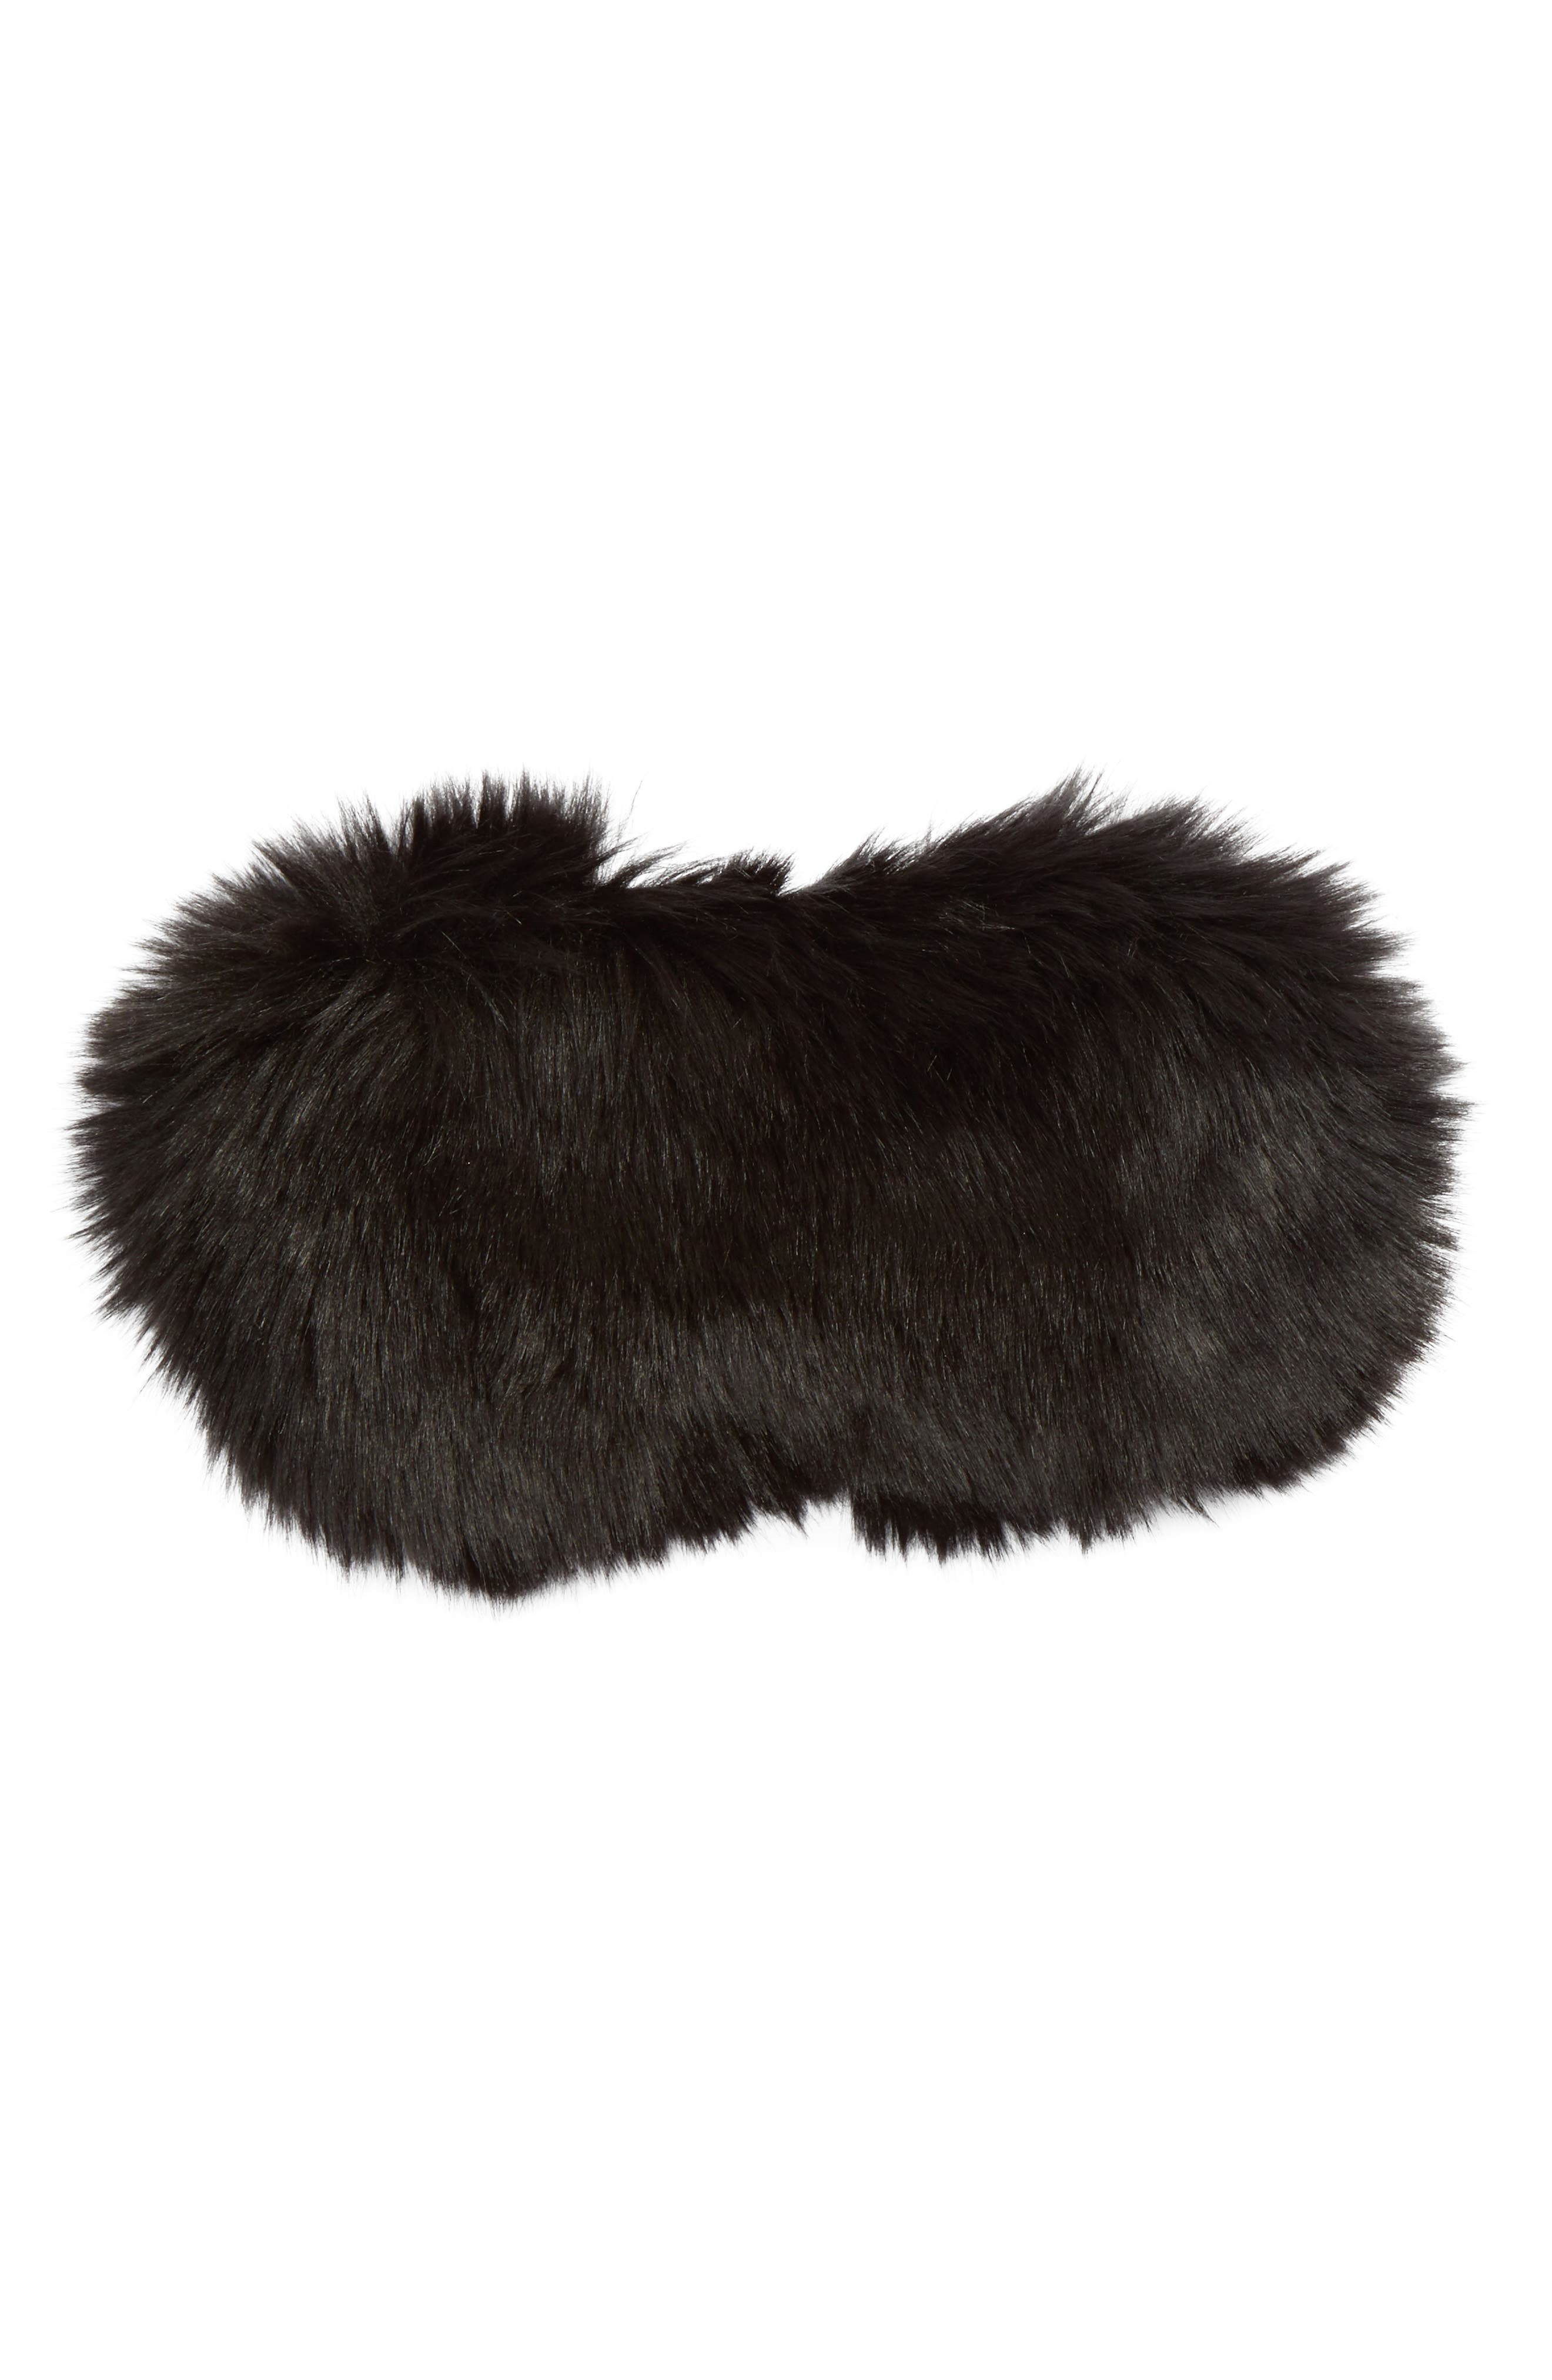 Nordstrom Faux Fur Eye Mask,                         Main,                         color, 001